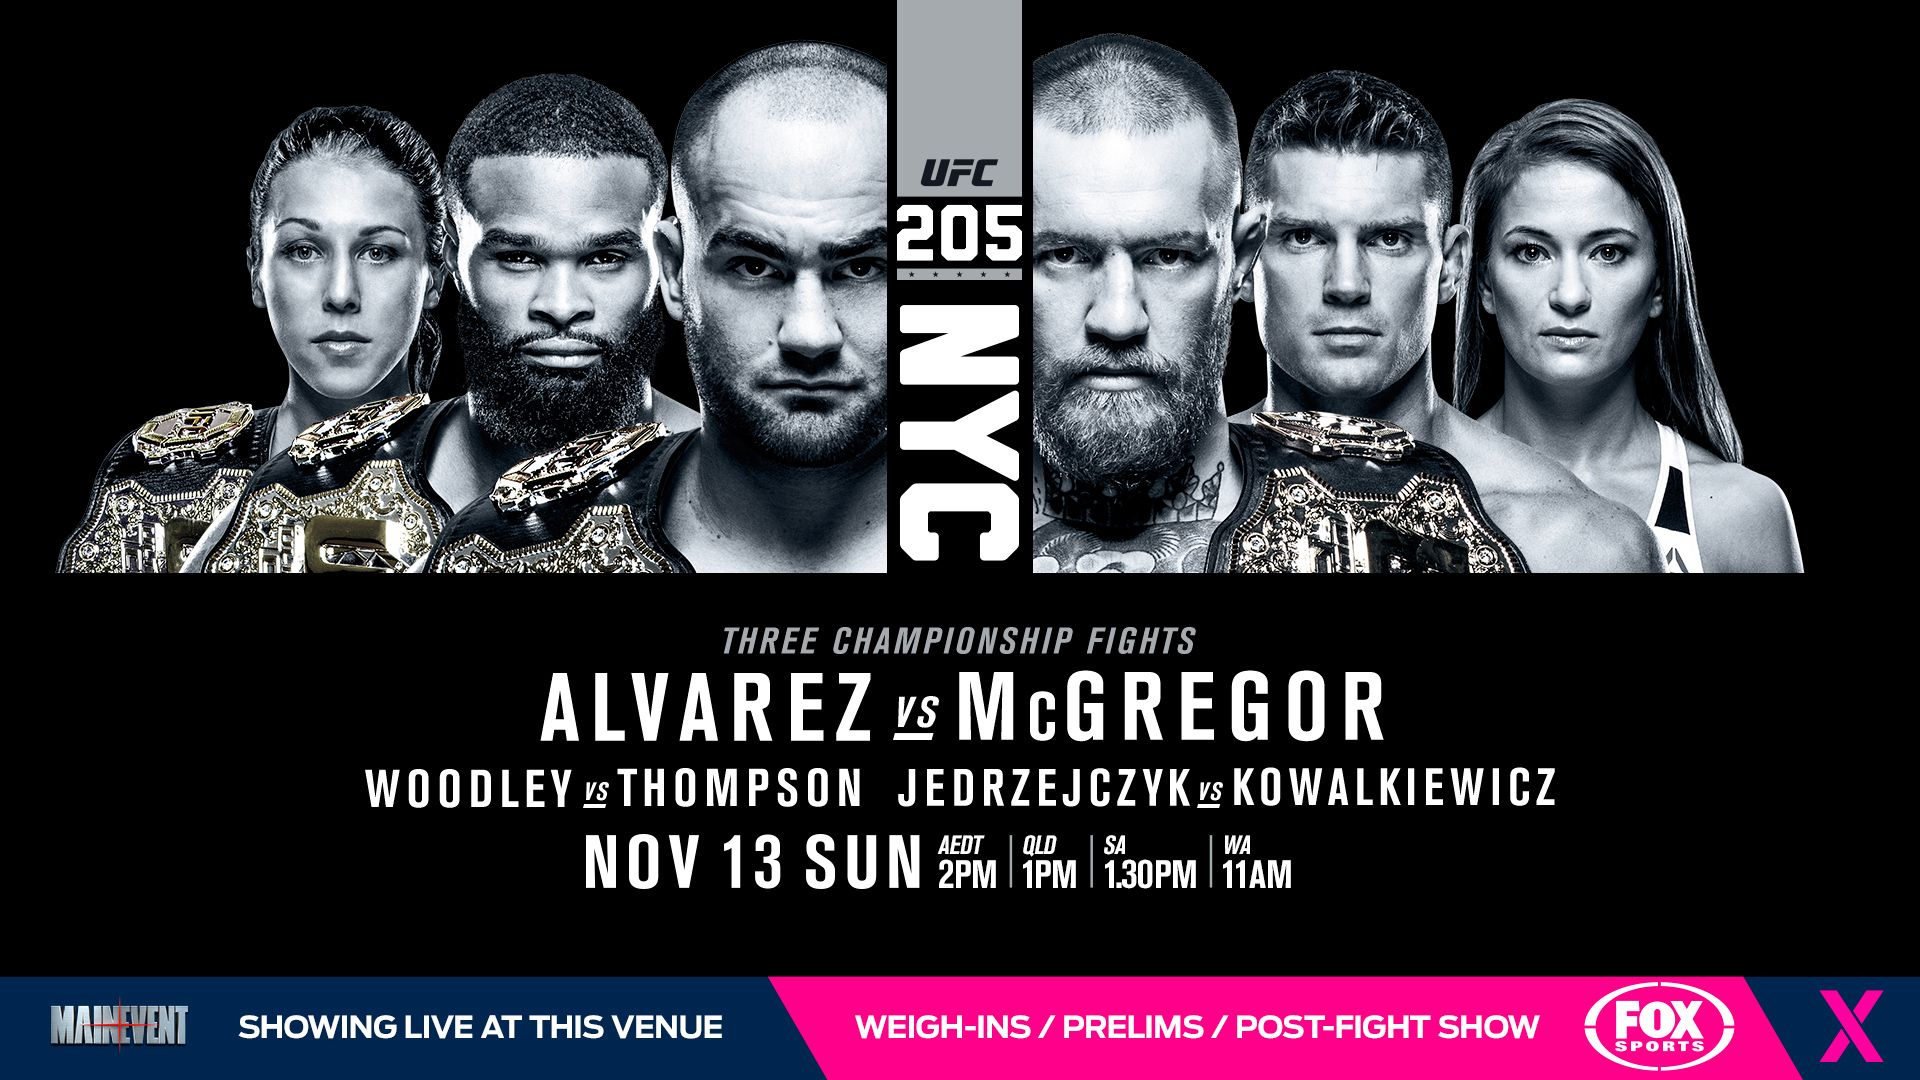 Wallpaper for UFC 205 MMA Wallpapers UFC Movie posters Venus 1920x1080